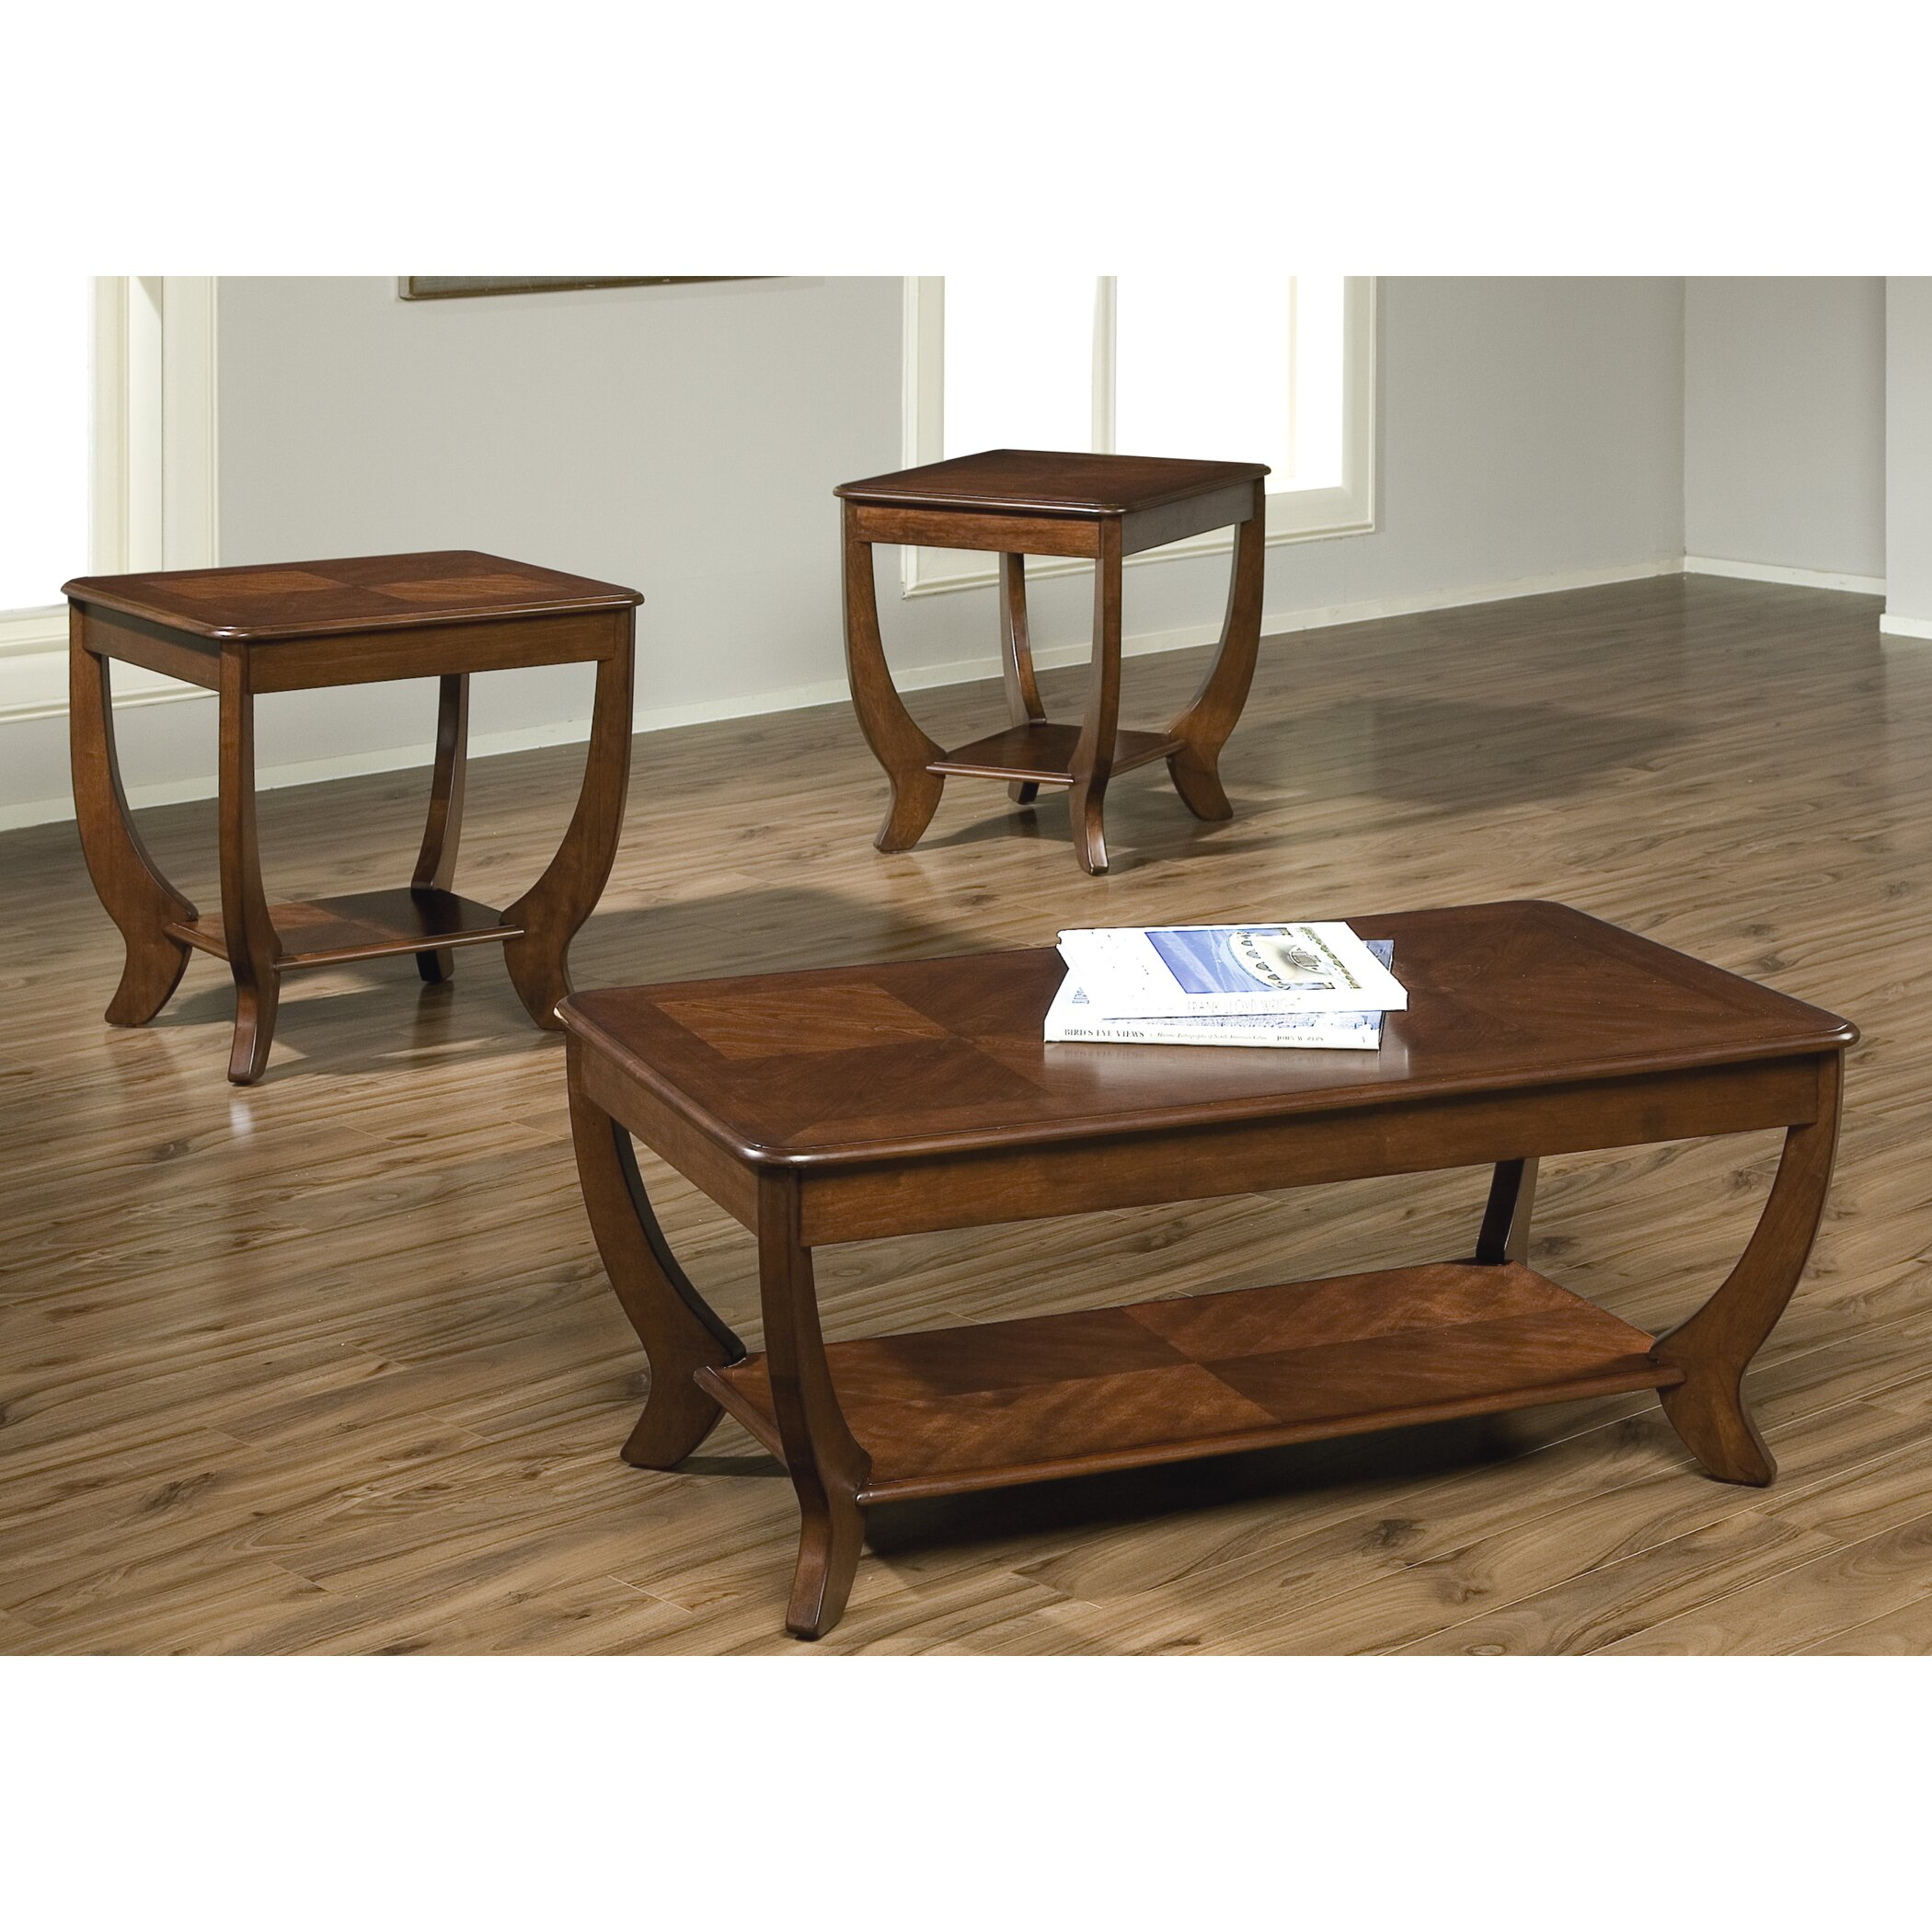 Rosalind Wheeler Pettigrew 3 Piece Coffee Table Set Reviews Wayfair